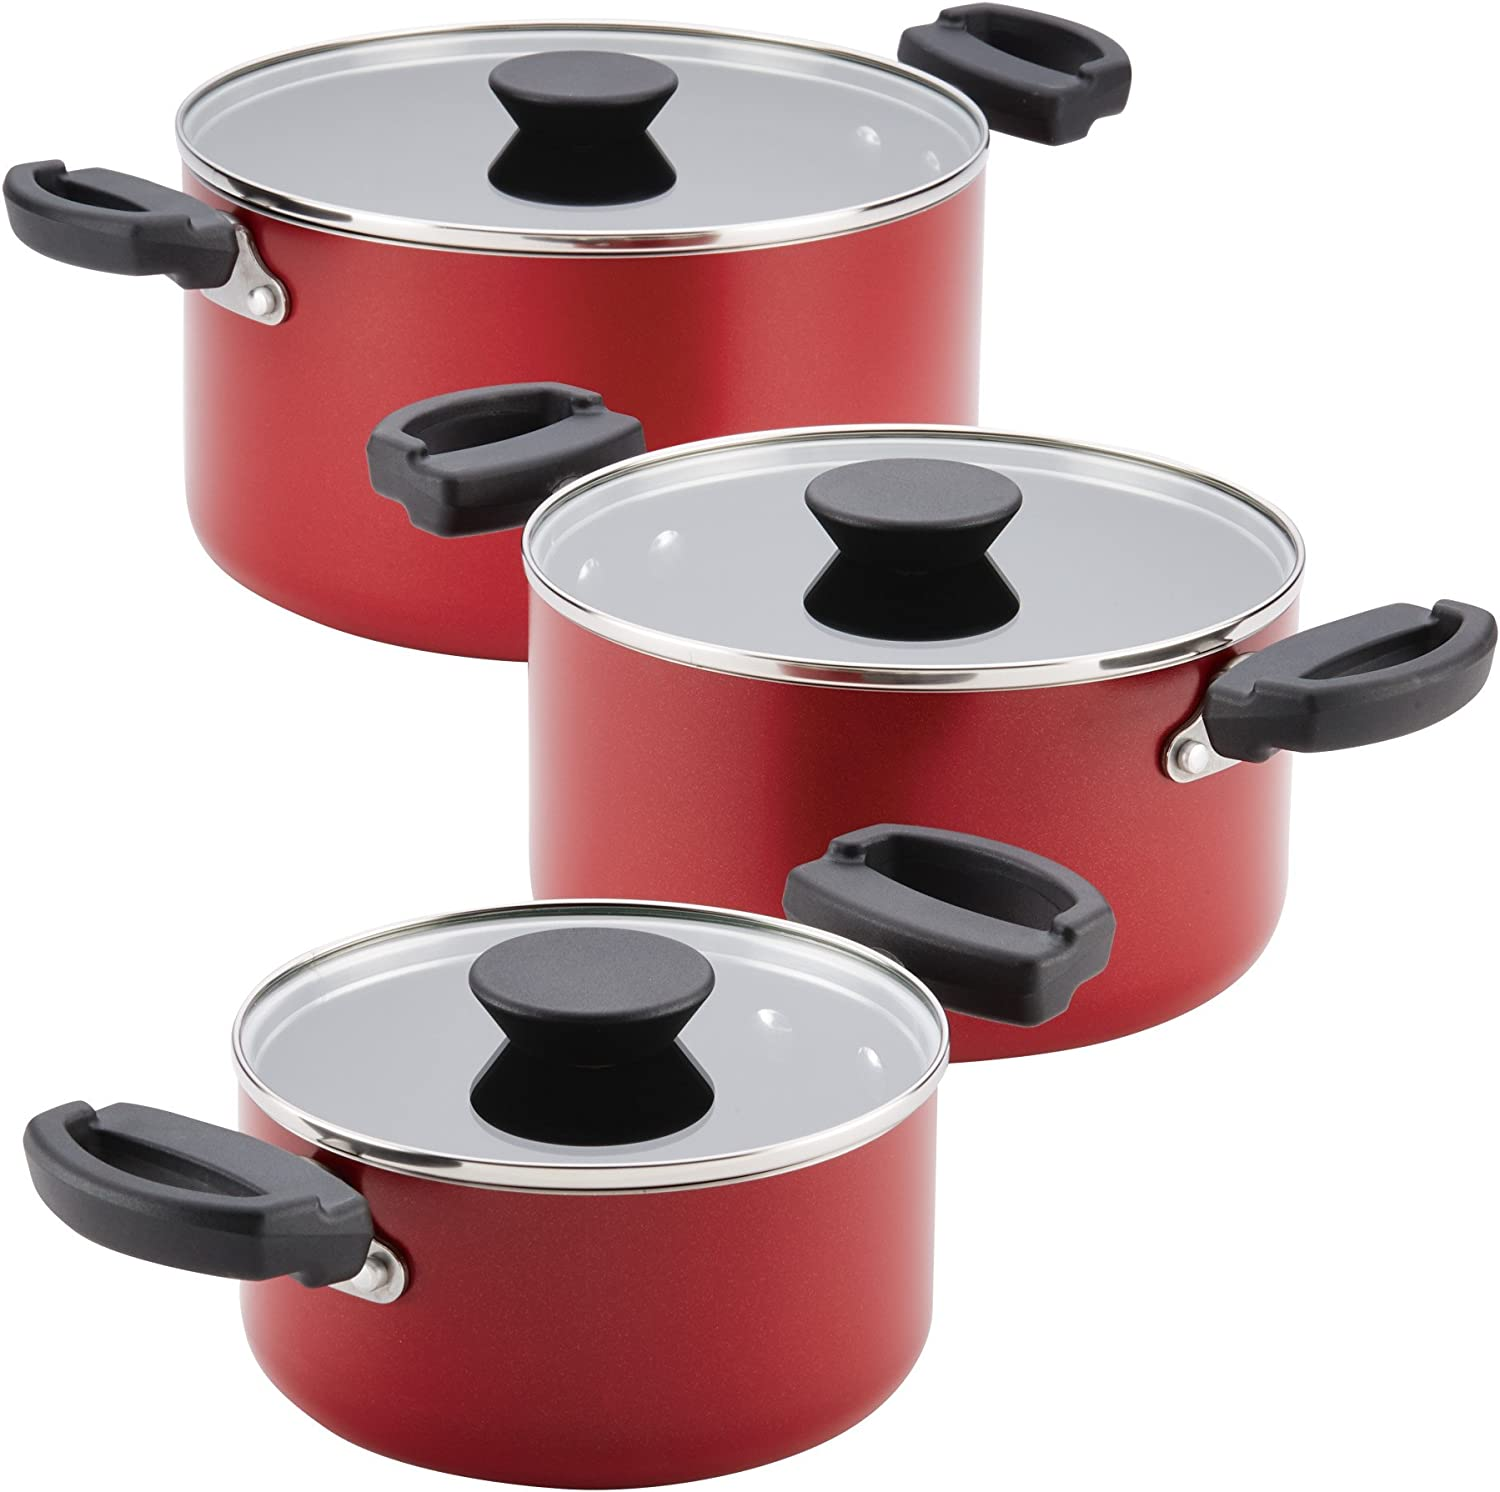 Amazon Com Farberware Neat Nest Space Saving Aluminum Nonstick Cookware Set Red Kitchen Dining